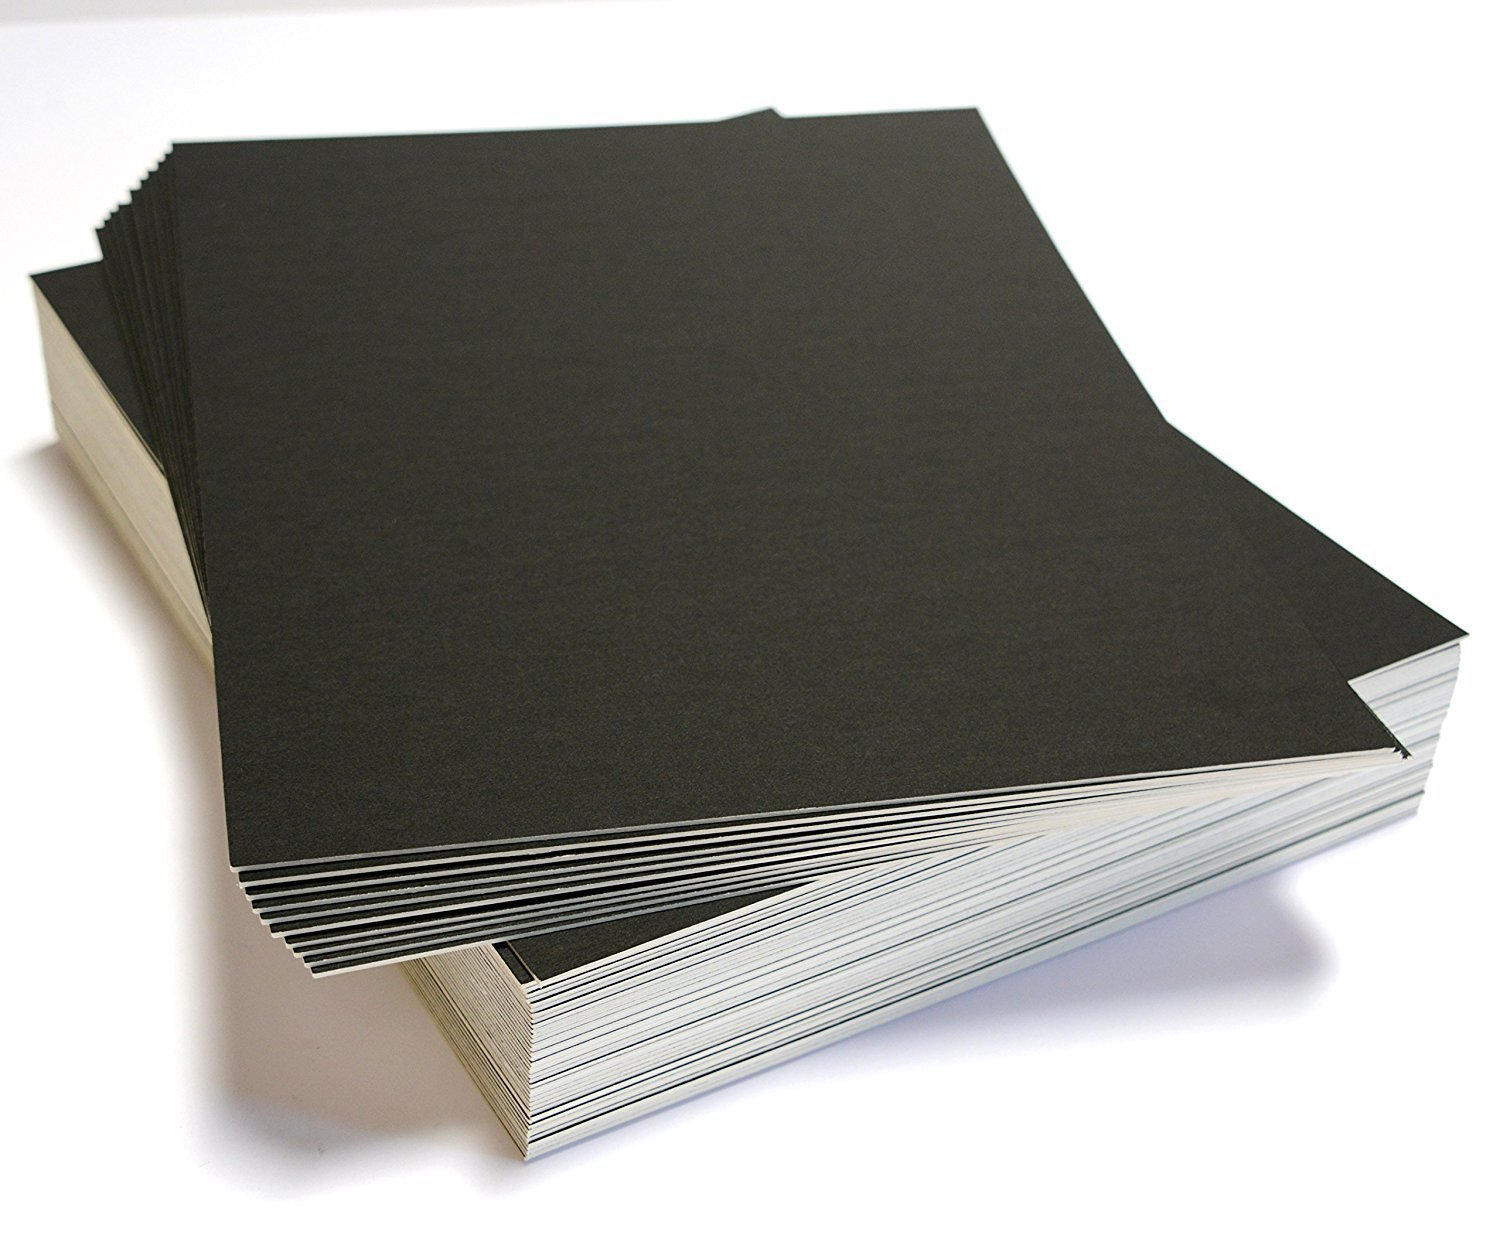 topseller100, Pack of 50 sheets 11x14 UNCUT mat matboard BLACK Color by Unknown